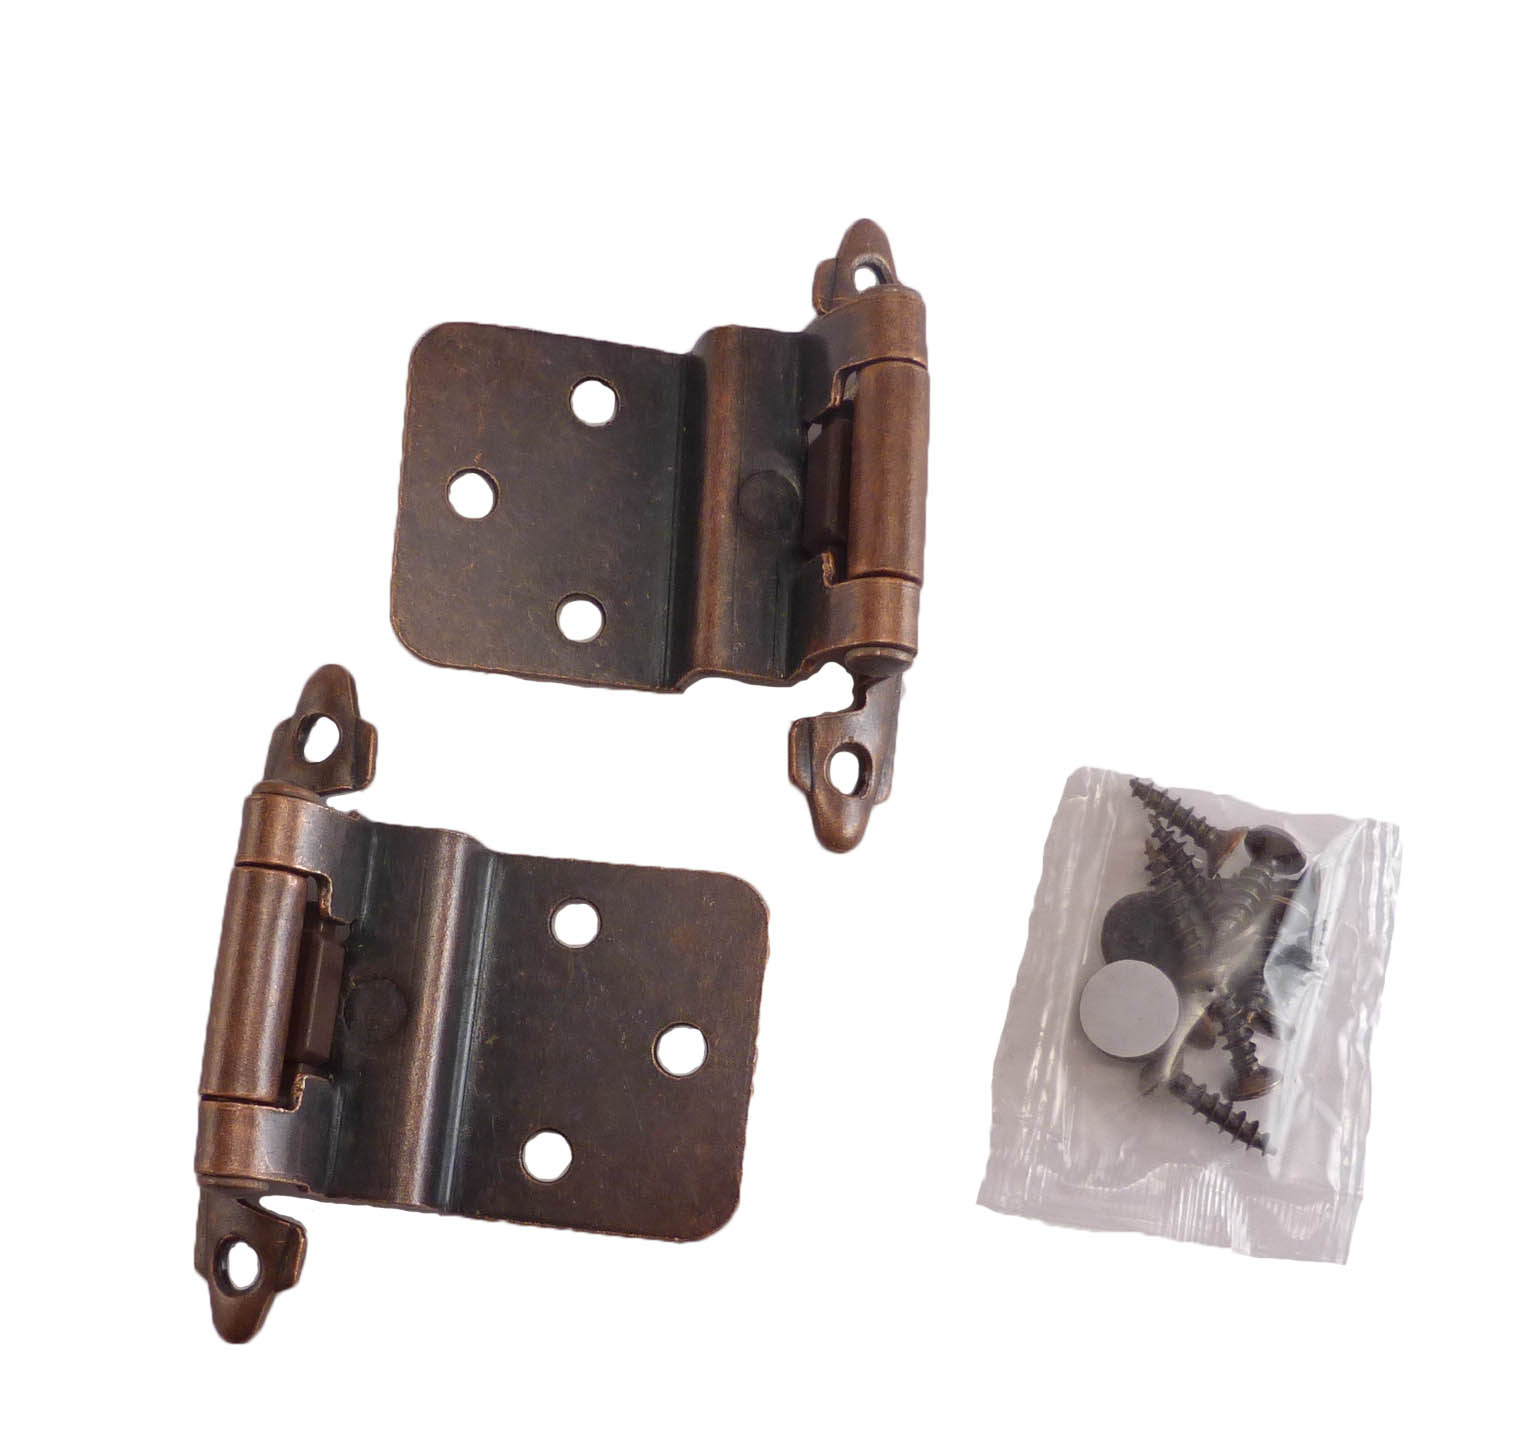 3 8 inch inset cabinet hinges cheap 3 8 offset cabinet for Amerock hinges for kitchen cabinets